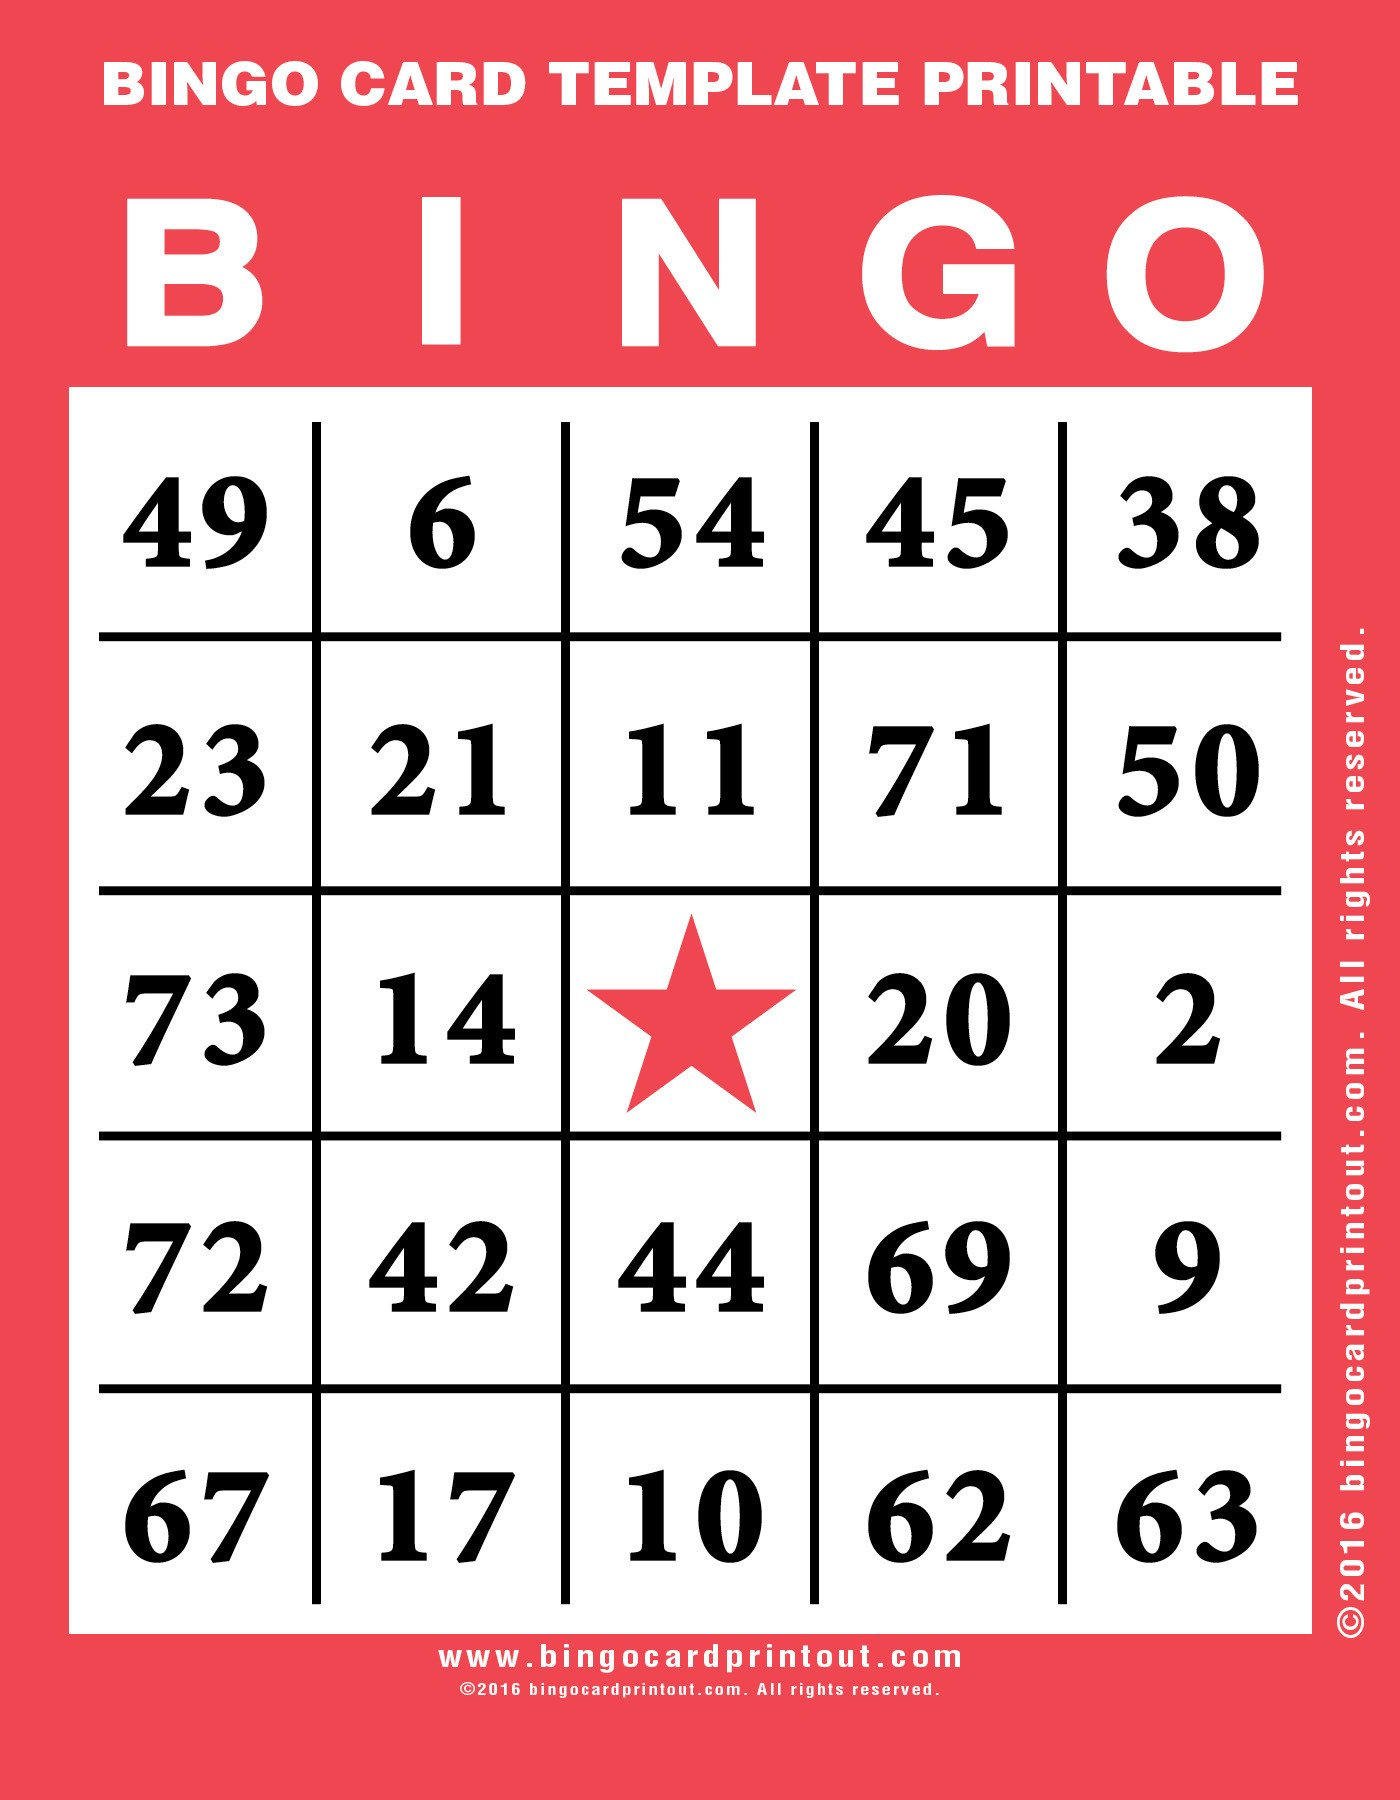 Bingo Card Template Free Bingo Card Template Printable Bingocardprintout